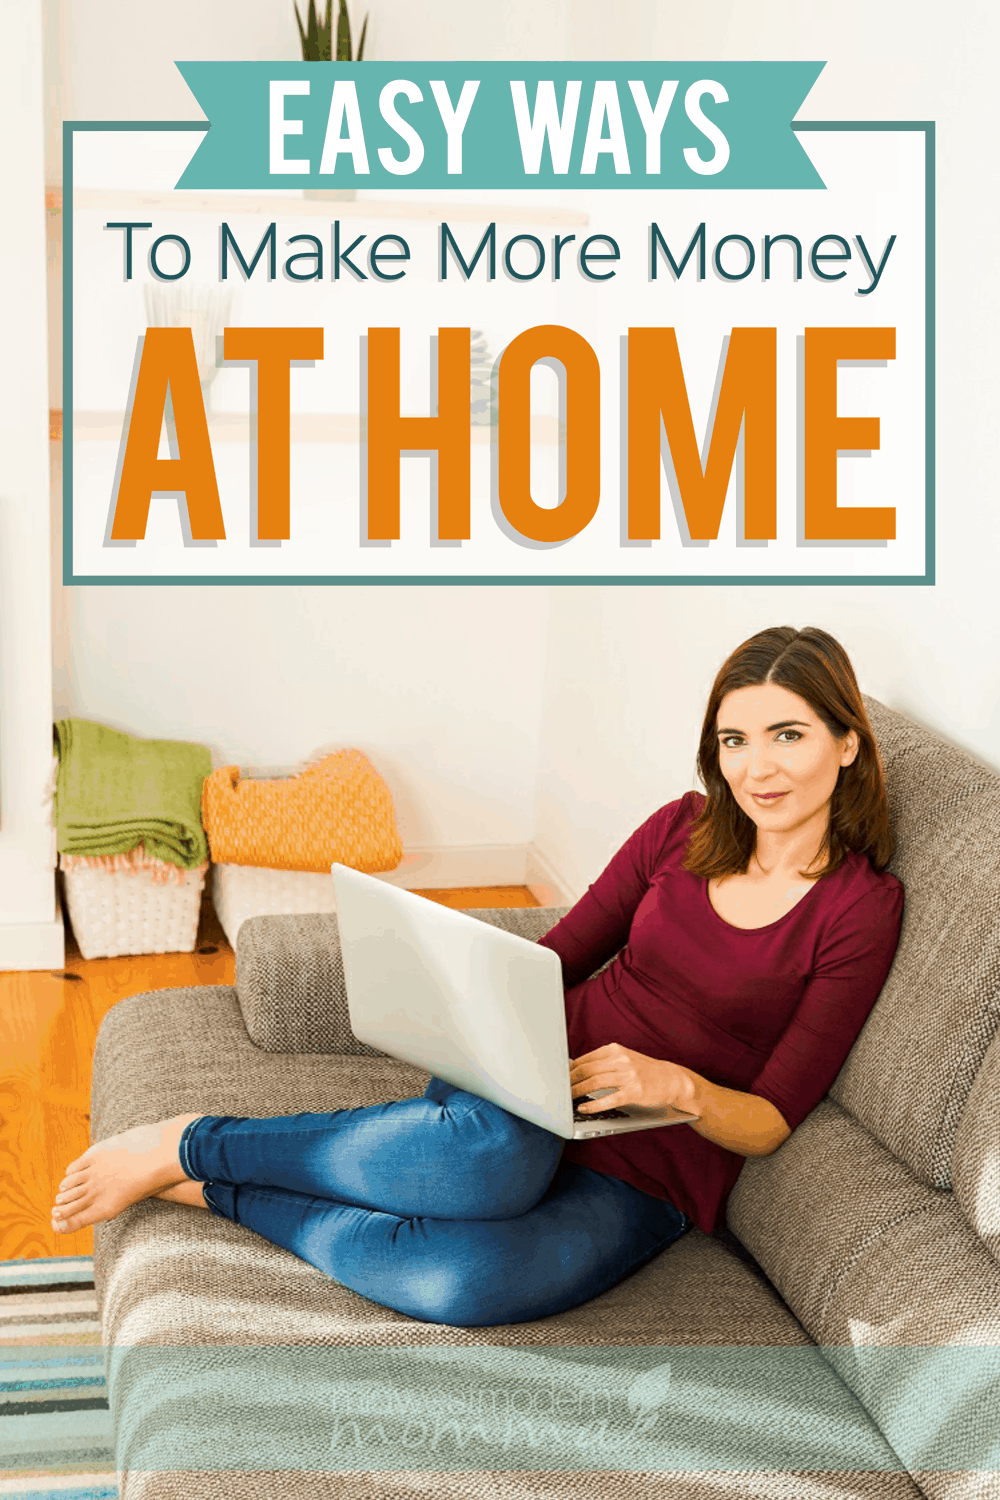 15 Best Ways to Make Money from Home (Legitimate)